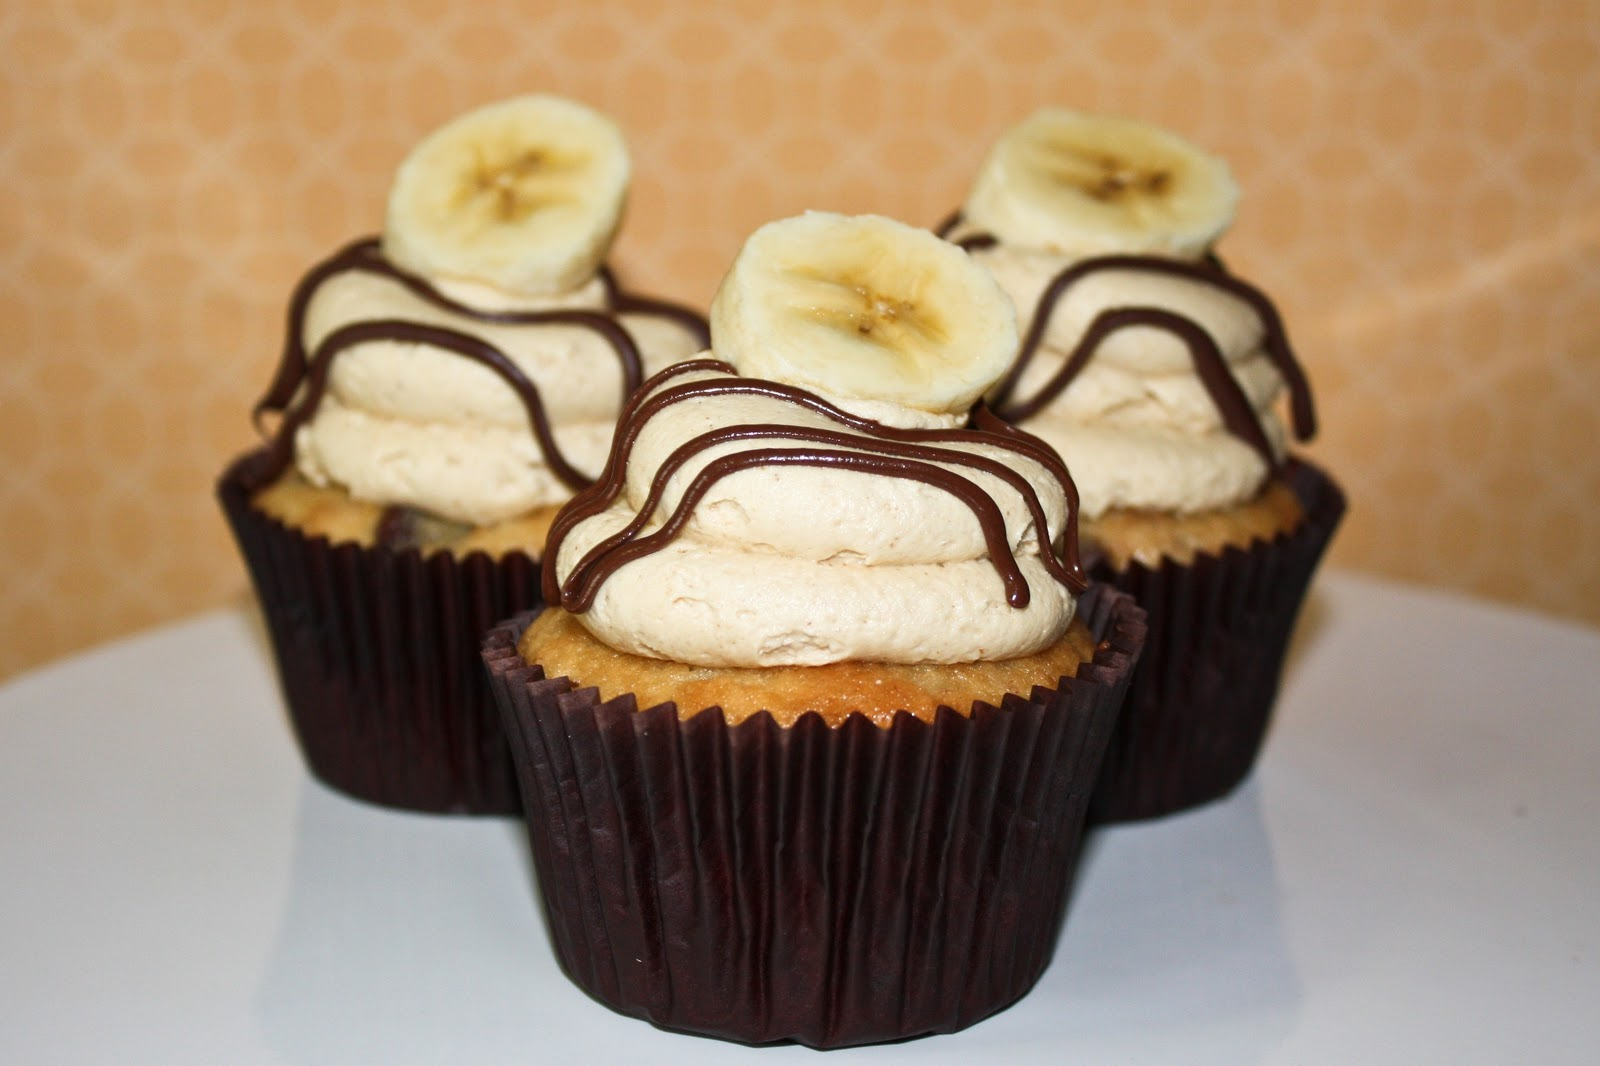 Chocolate & Banana Cupcakes (with recipe link!)